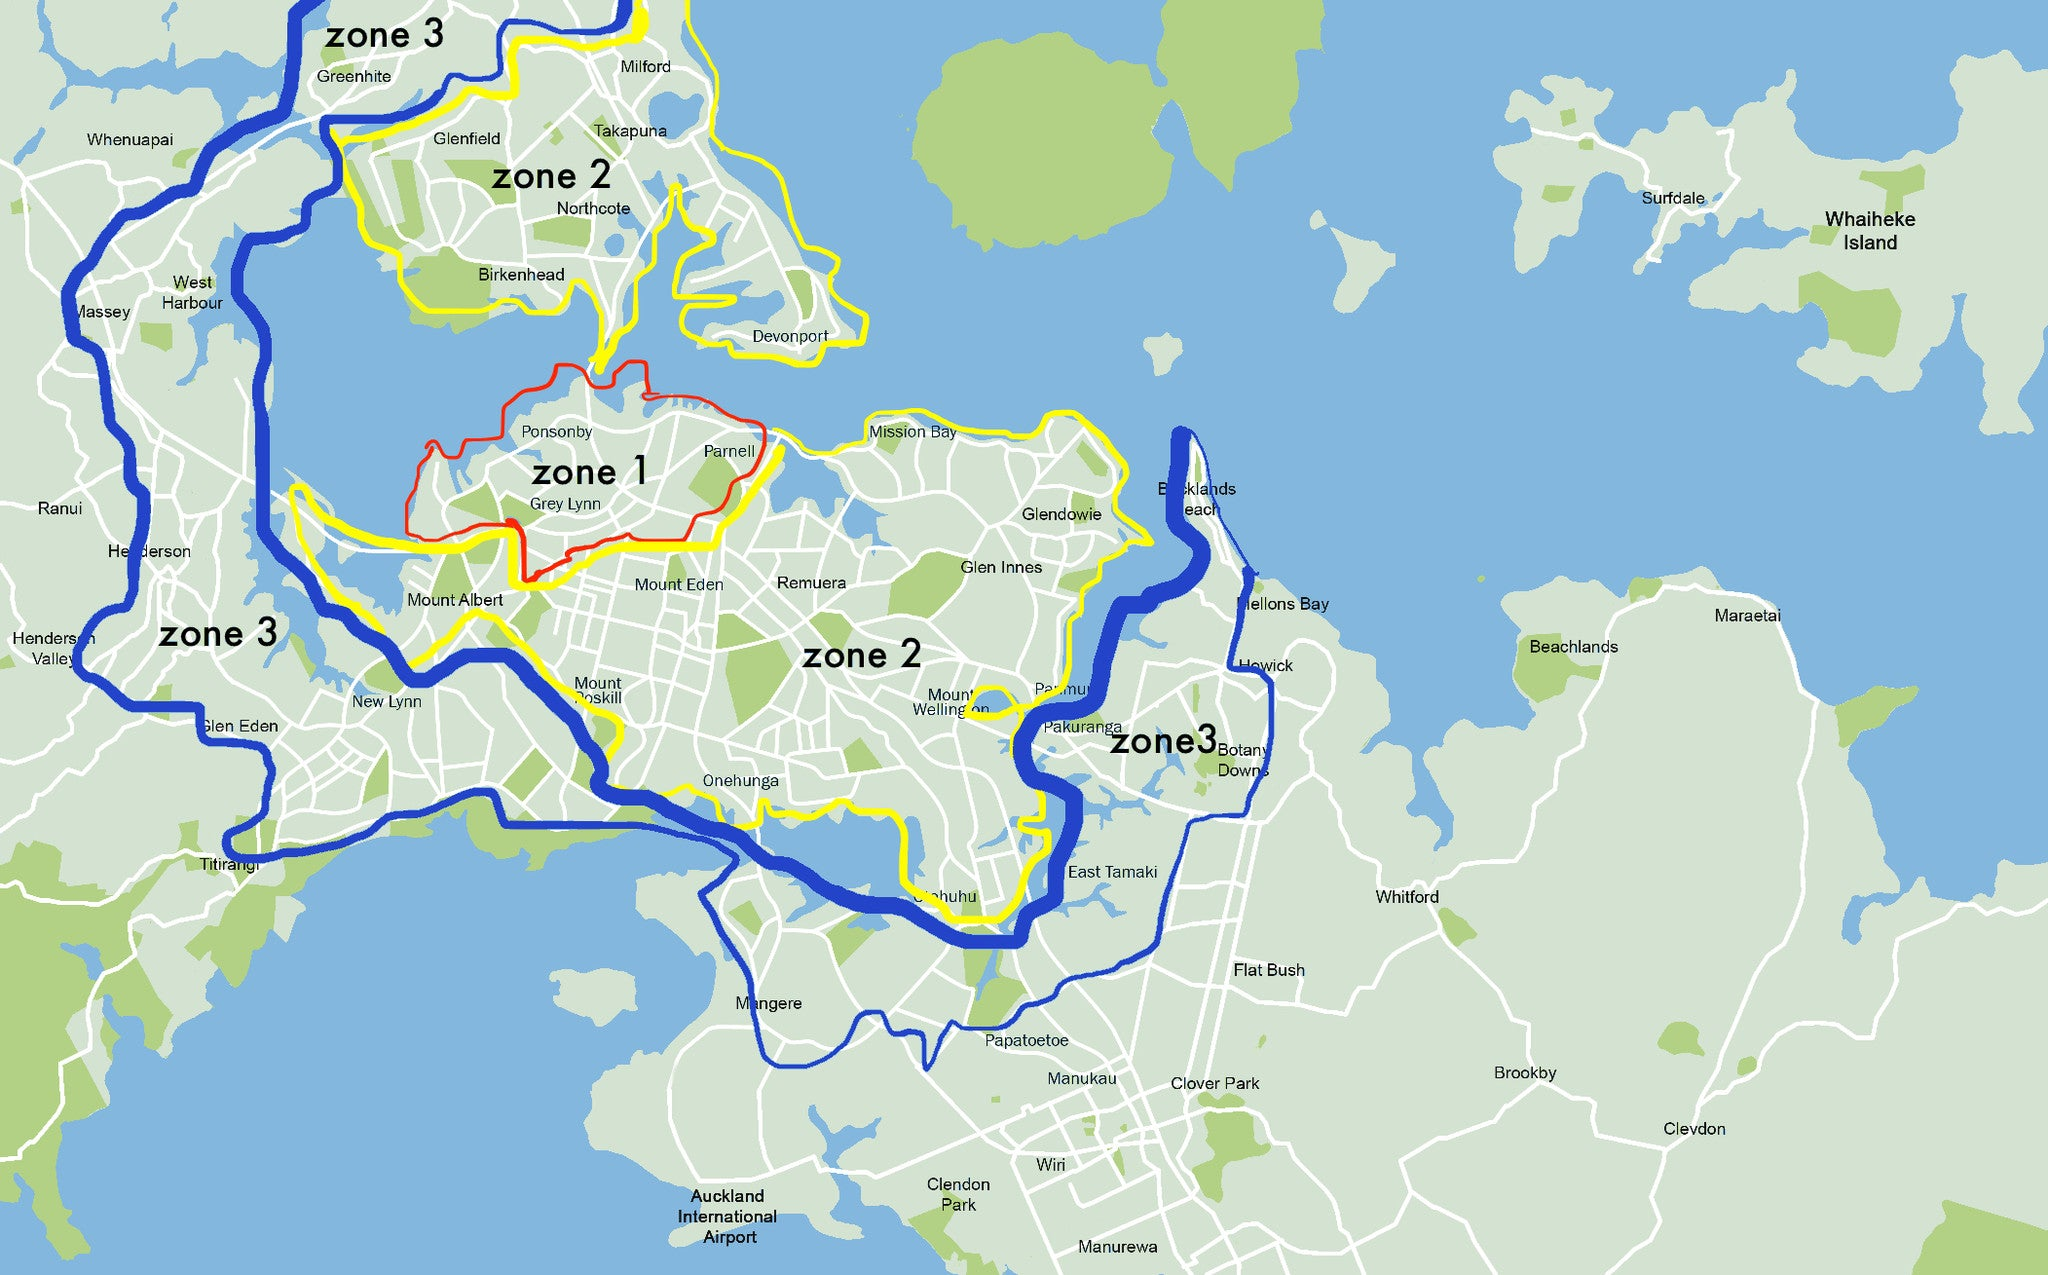 Delivery Areas Zones For Auckland RIPE DELICATESSEN